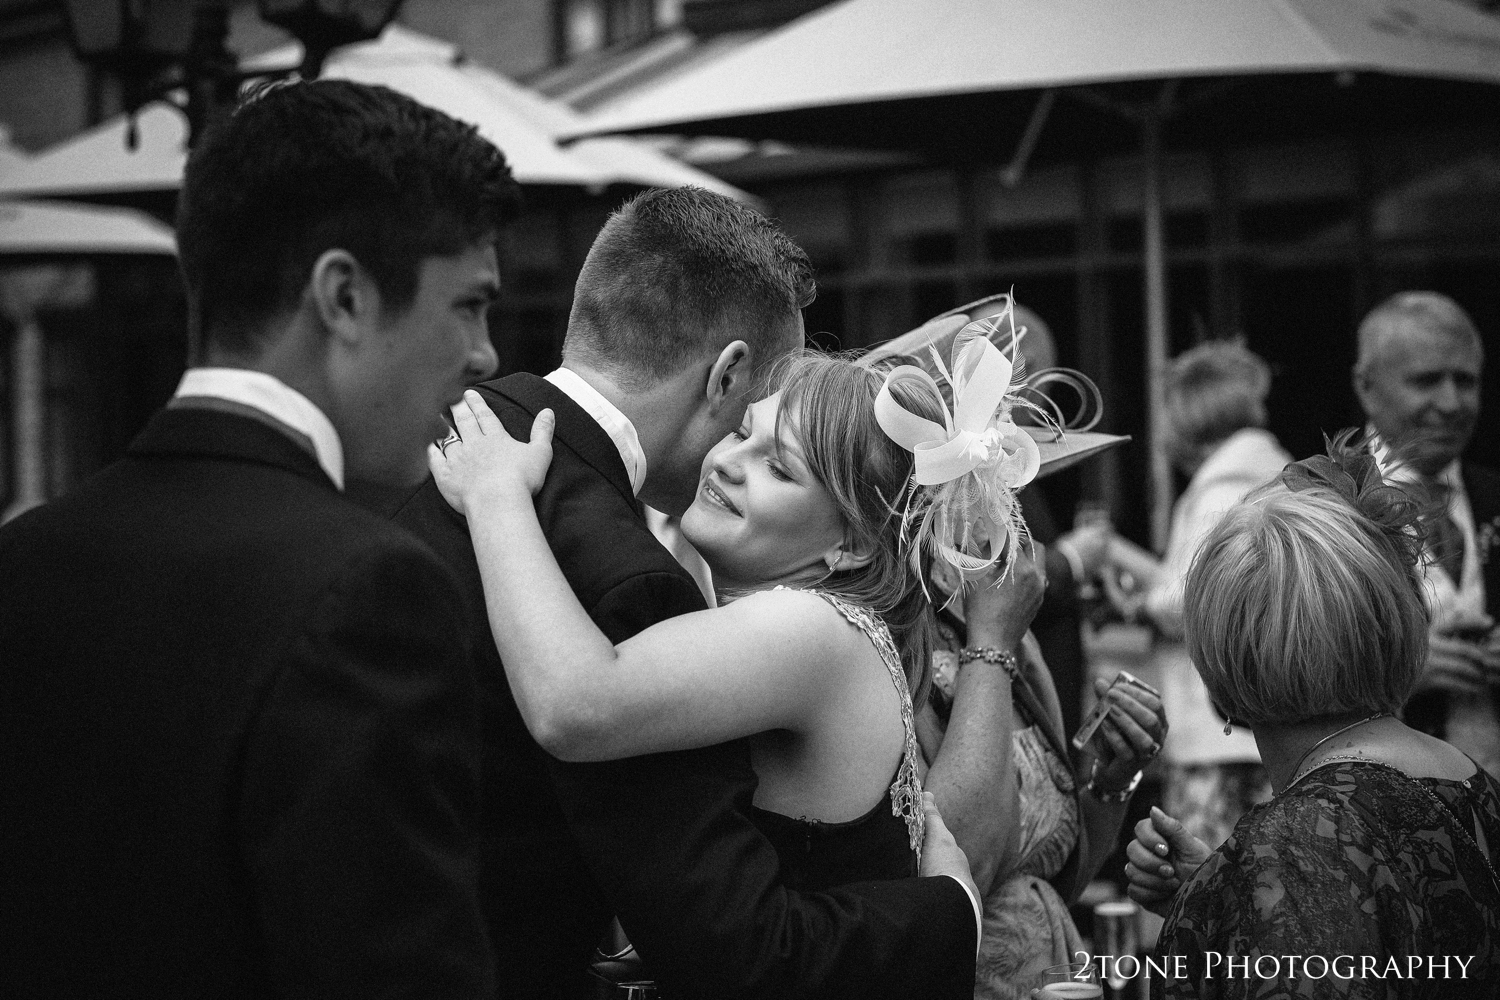 I always call these shots the meets and greets, but they are so much more than that, they are memories being made, words of love and congratulations from close friends and family, laughter and joy. For us, shots like this are an essential part of the day and are a privilege to photograph.